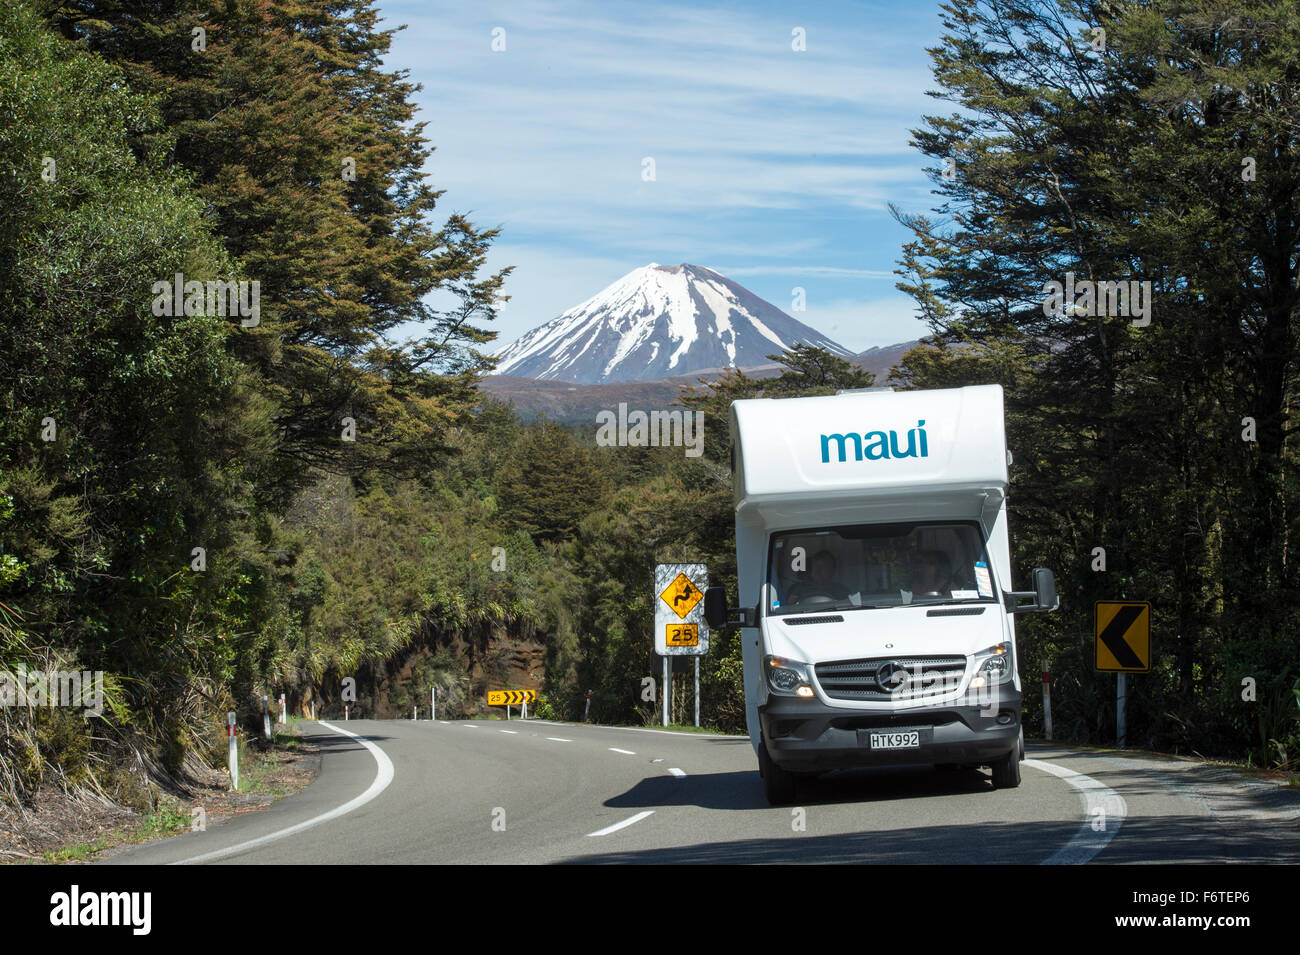 Maui Camper Van traveling along a windy part of the Dessert Road (SH1) in the middle of the North Island of New - Stock Image